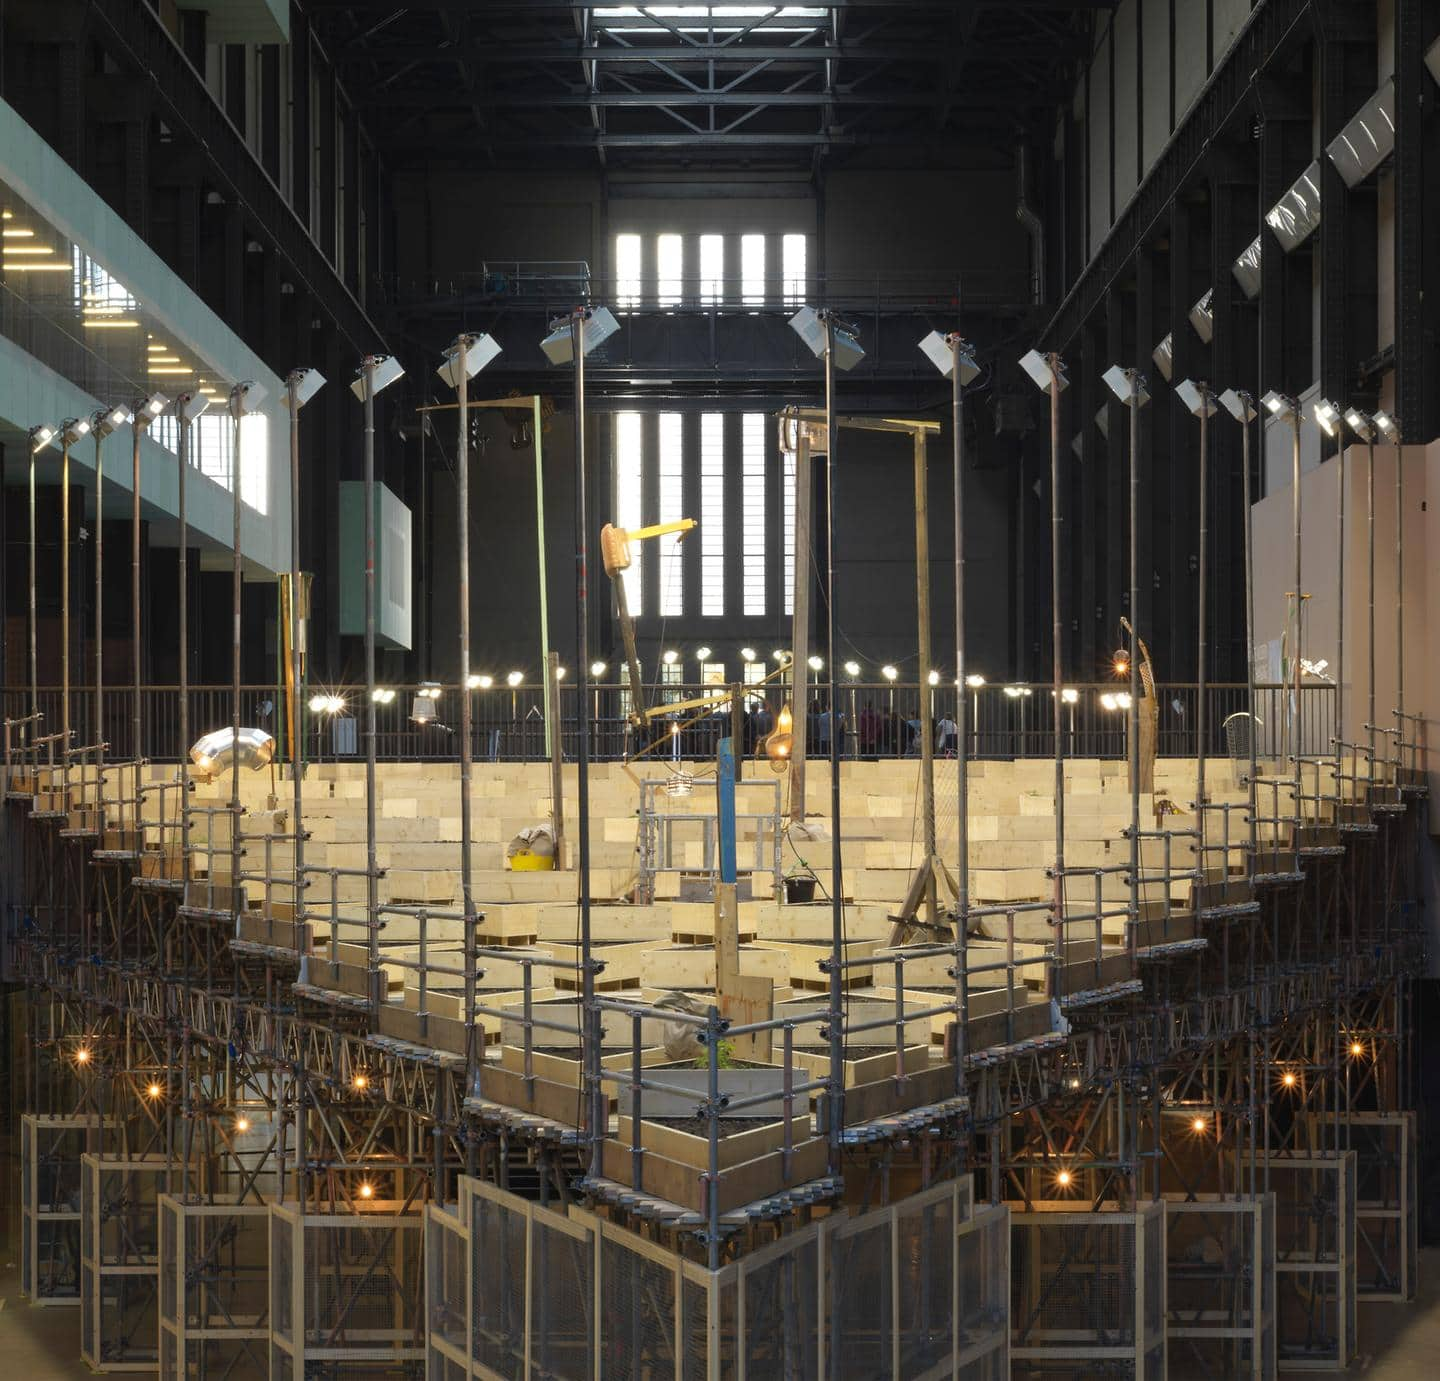 Hyundai Motor Announces the Opening of the Inaugural Hyundai Commission at Tate Modern (3)